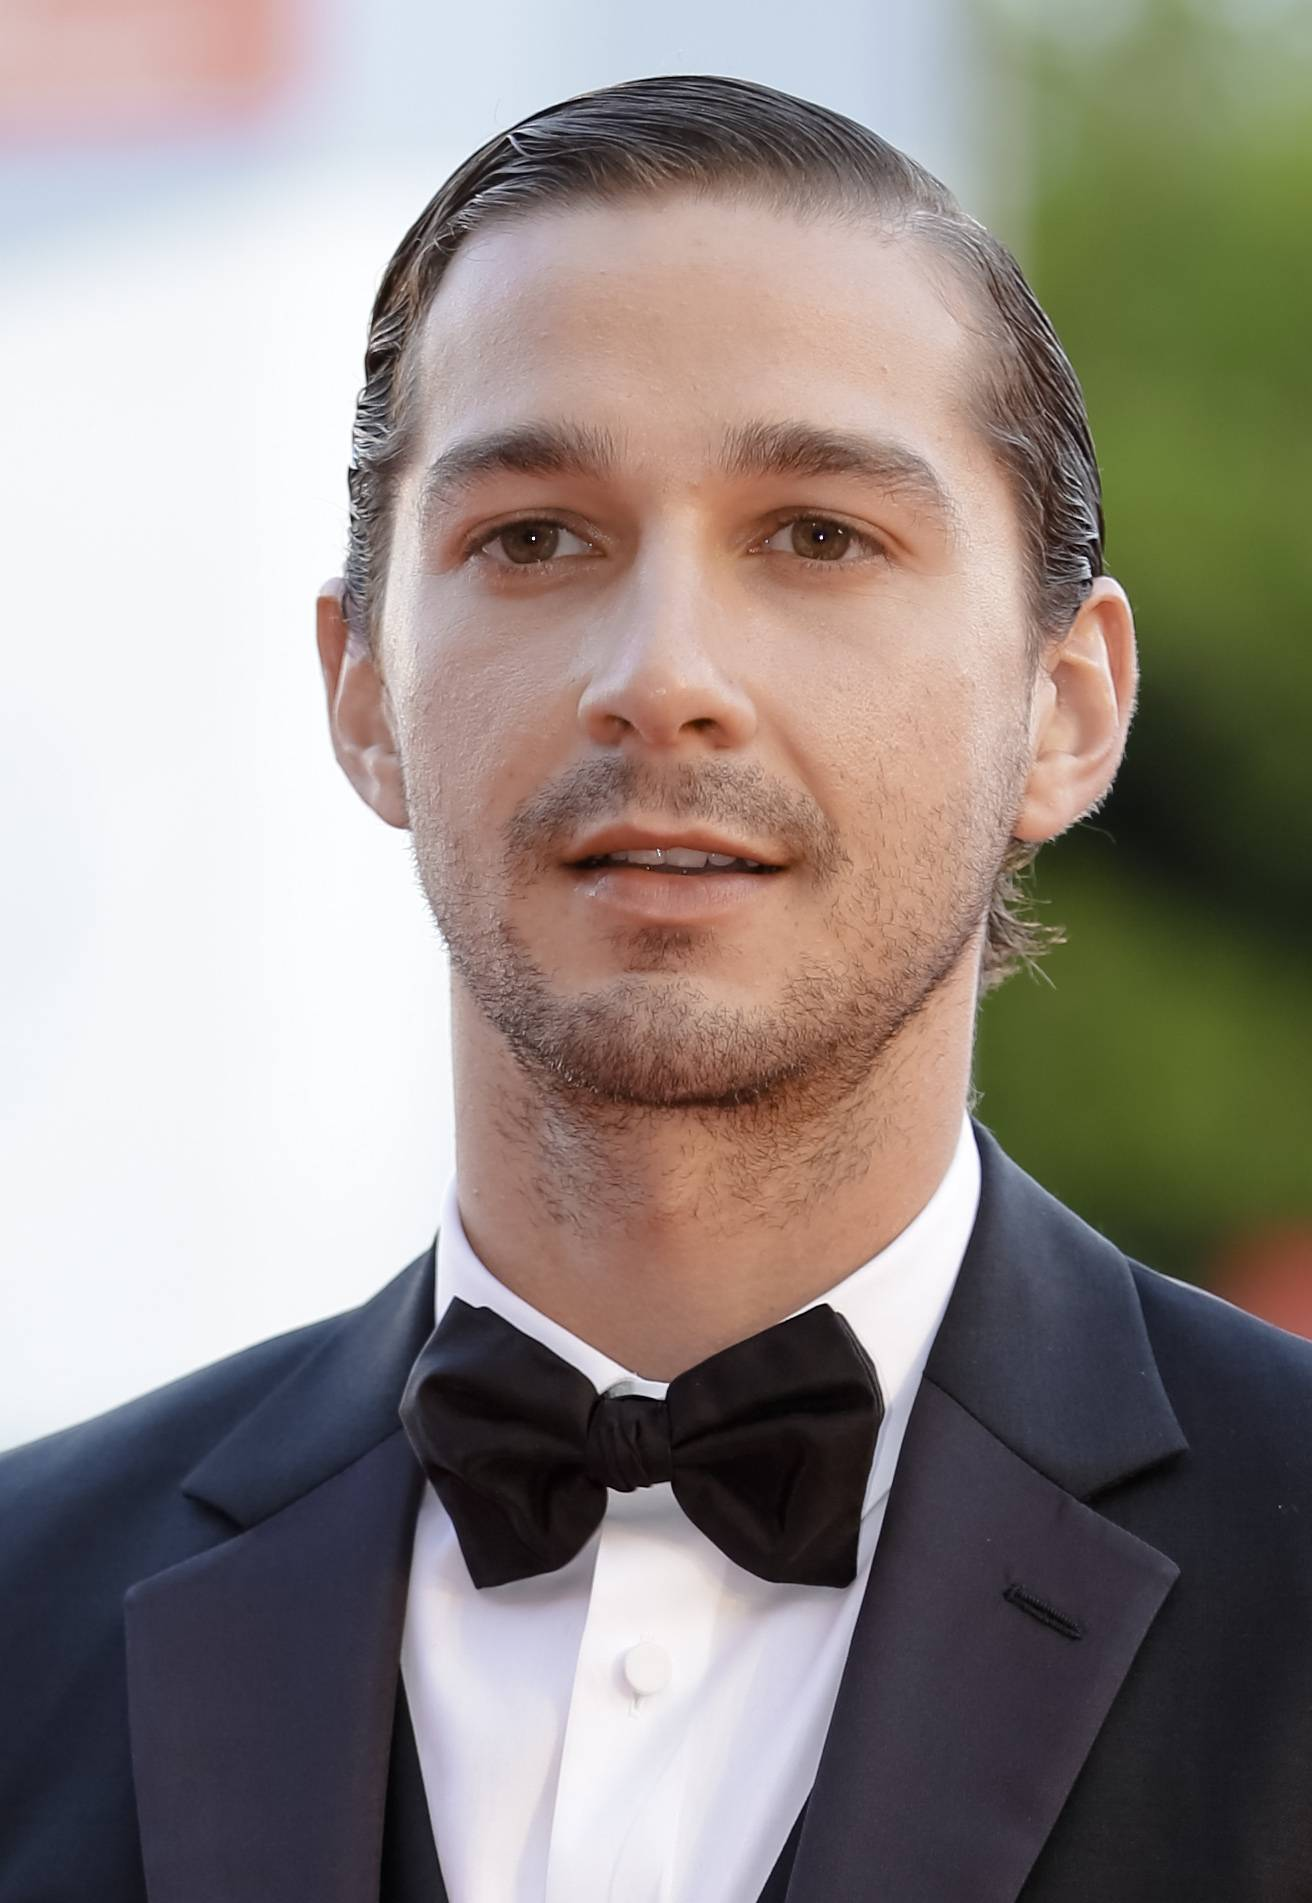 The New York Police Department confirmed on Thursday that Shia LaBeouf was taken out of a New York City theater for being disorderly and causing a disruption.